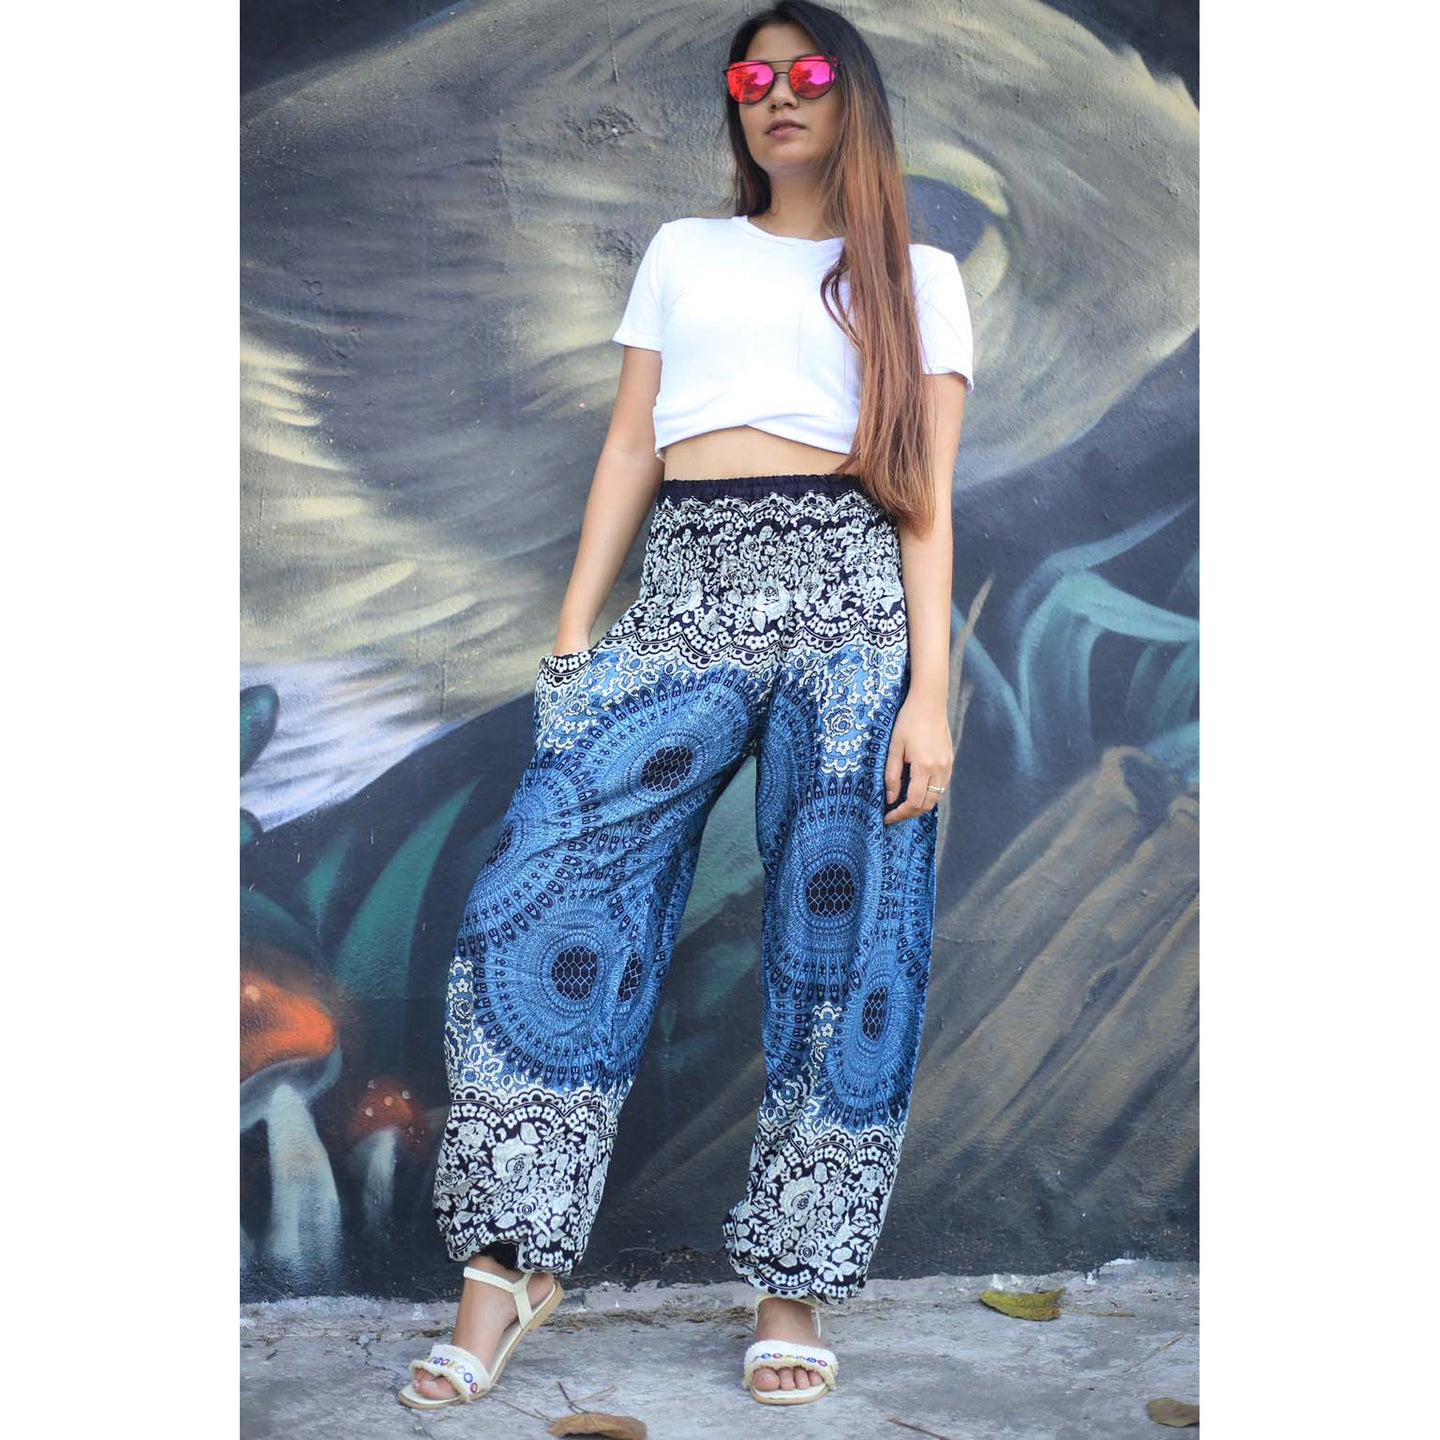 Mandala 125 women harem pants in Black PP0004 020125 01